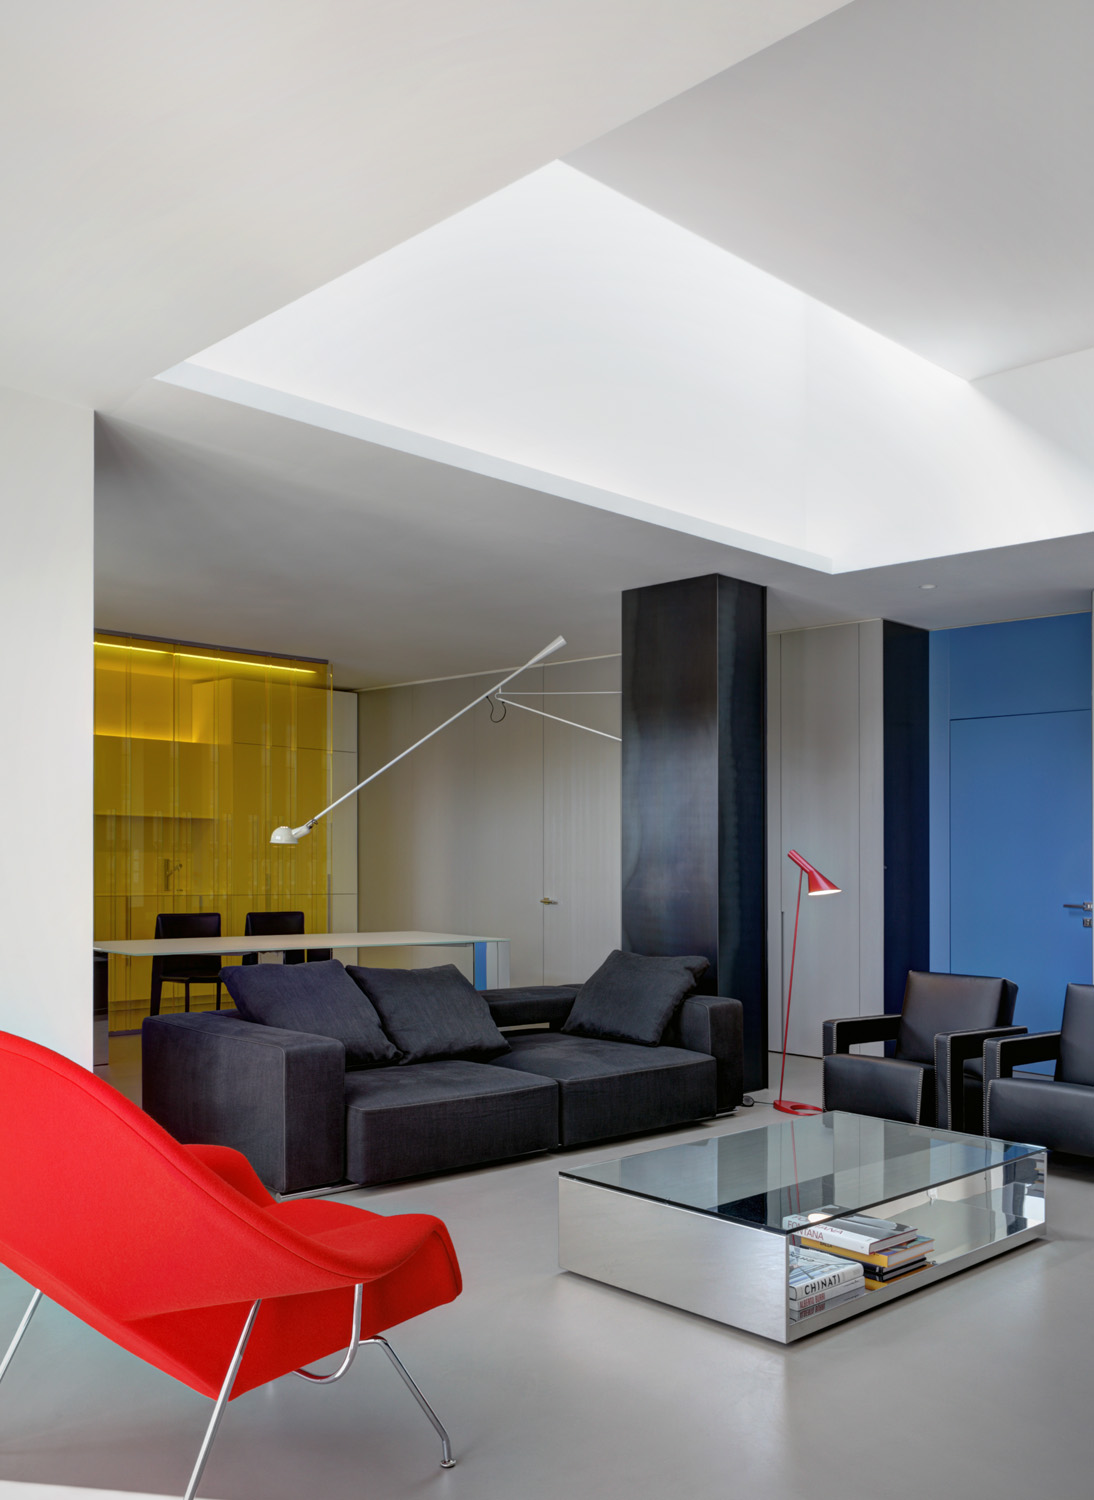 Editors pick: The use of primary colours in the living space. using different textures creates a unique layered effect